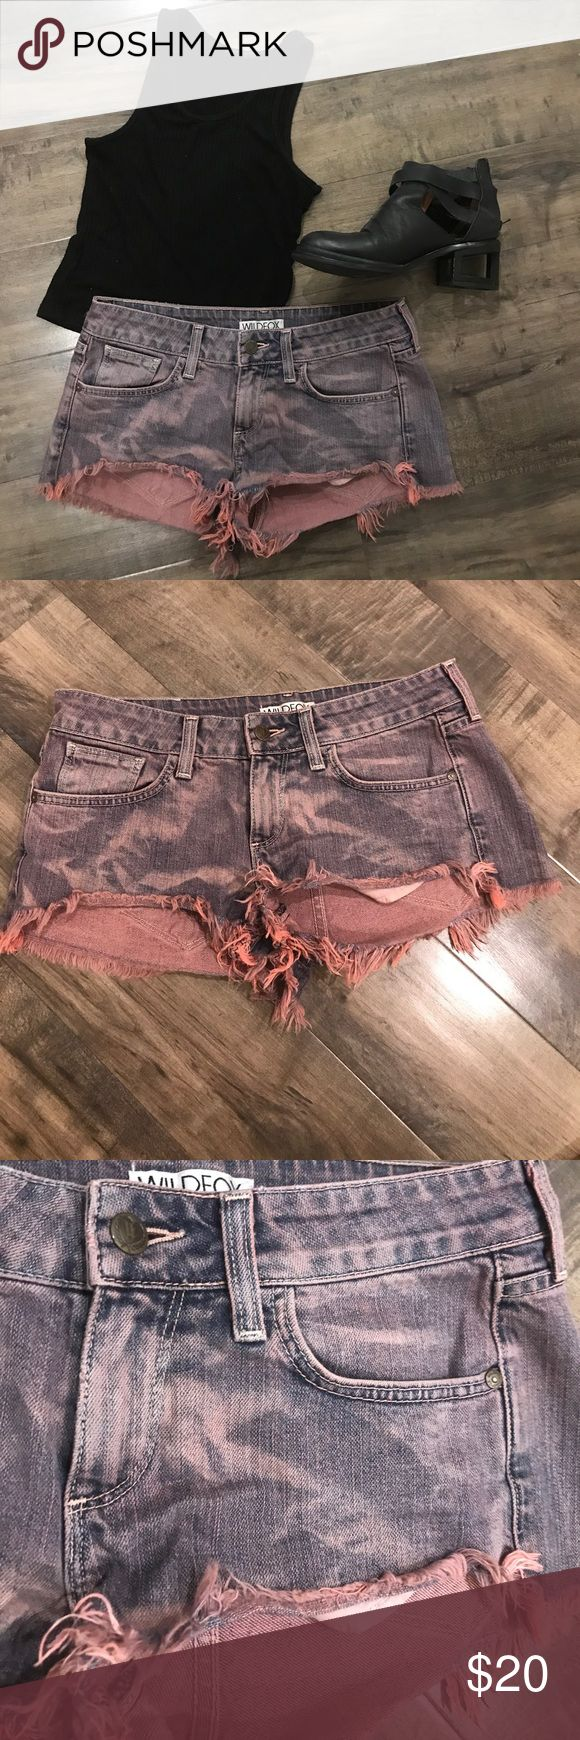 Wild fox shorts Awesome pink/dark purple ish frayed shorts! Perfect condition! Perfect for festivals or anything.... really cute on also have them in a teal color bundle and save $$$..Wild fox has a very flattering fit! Size 27 perfect condition only worn a couple times Wildfox Shorts Jean Shorts